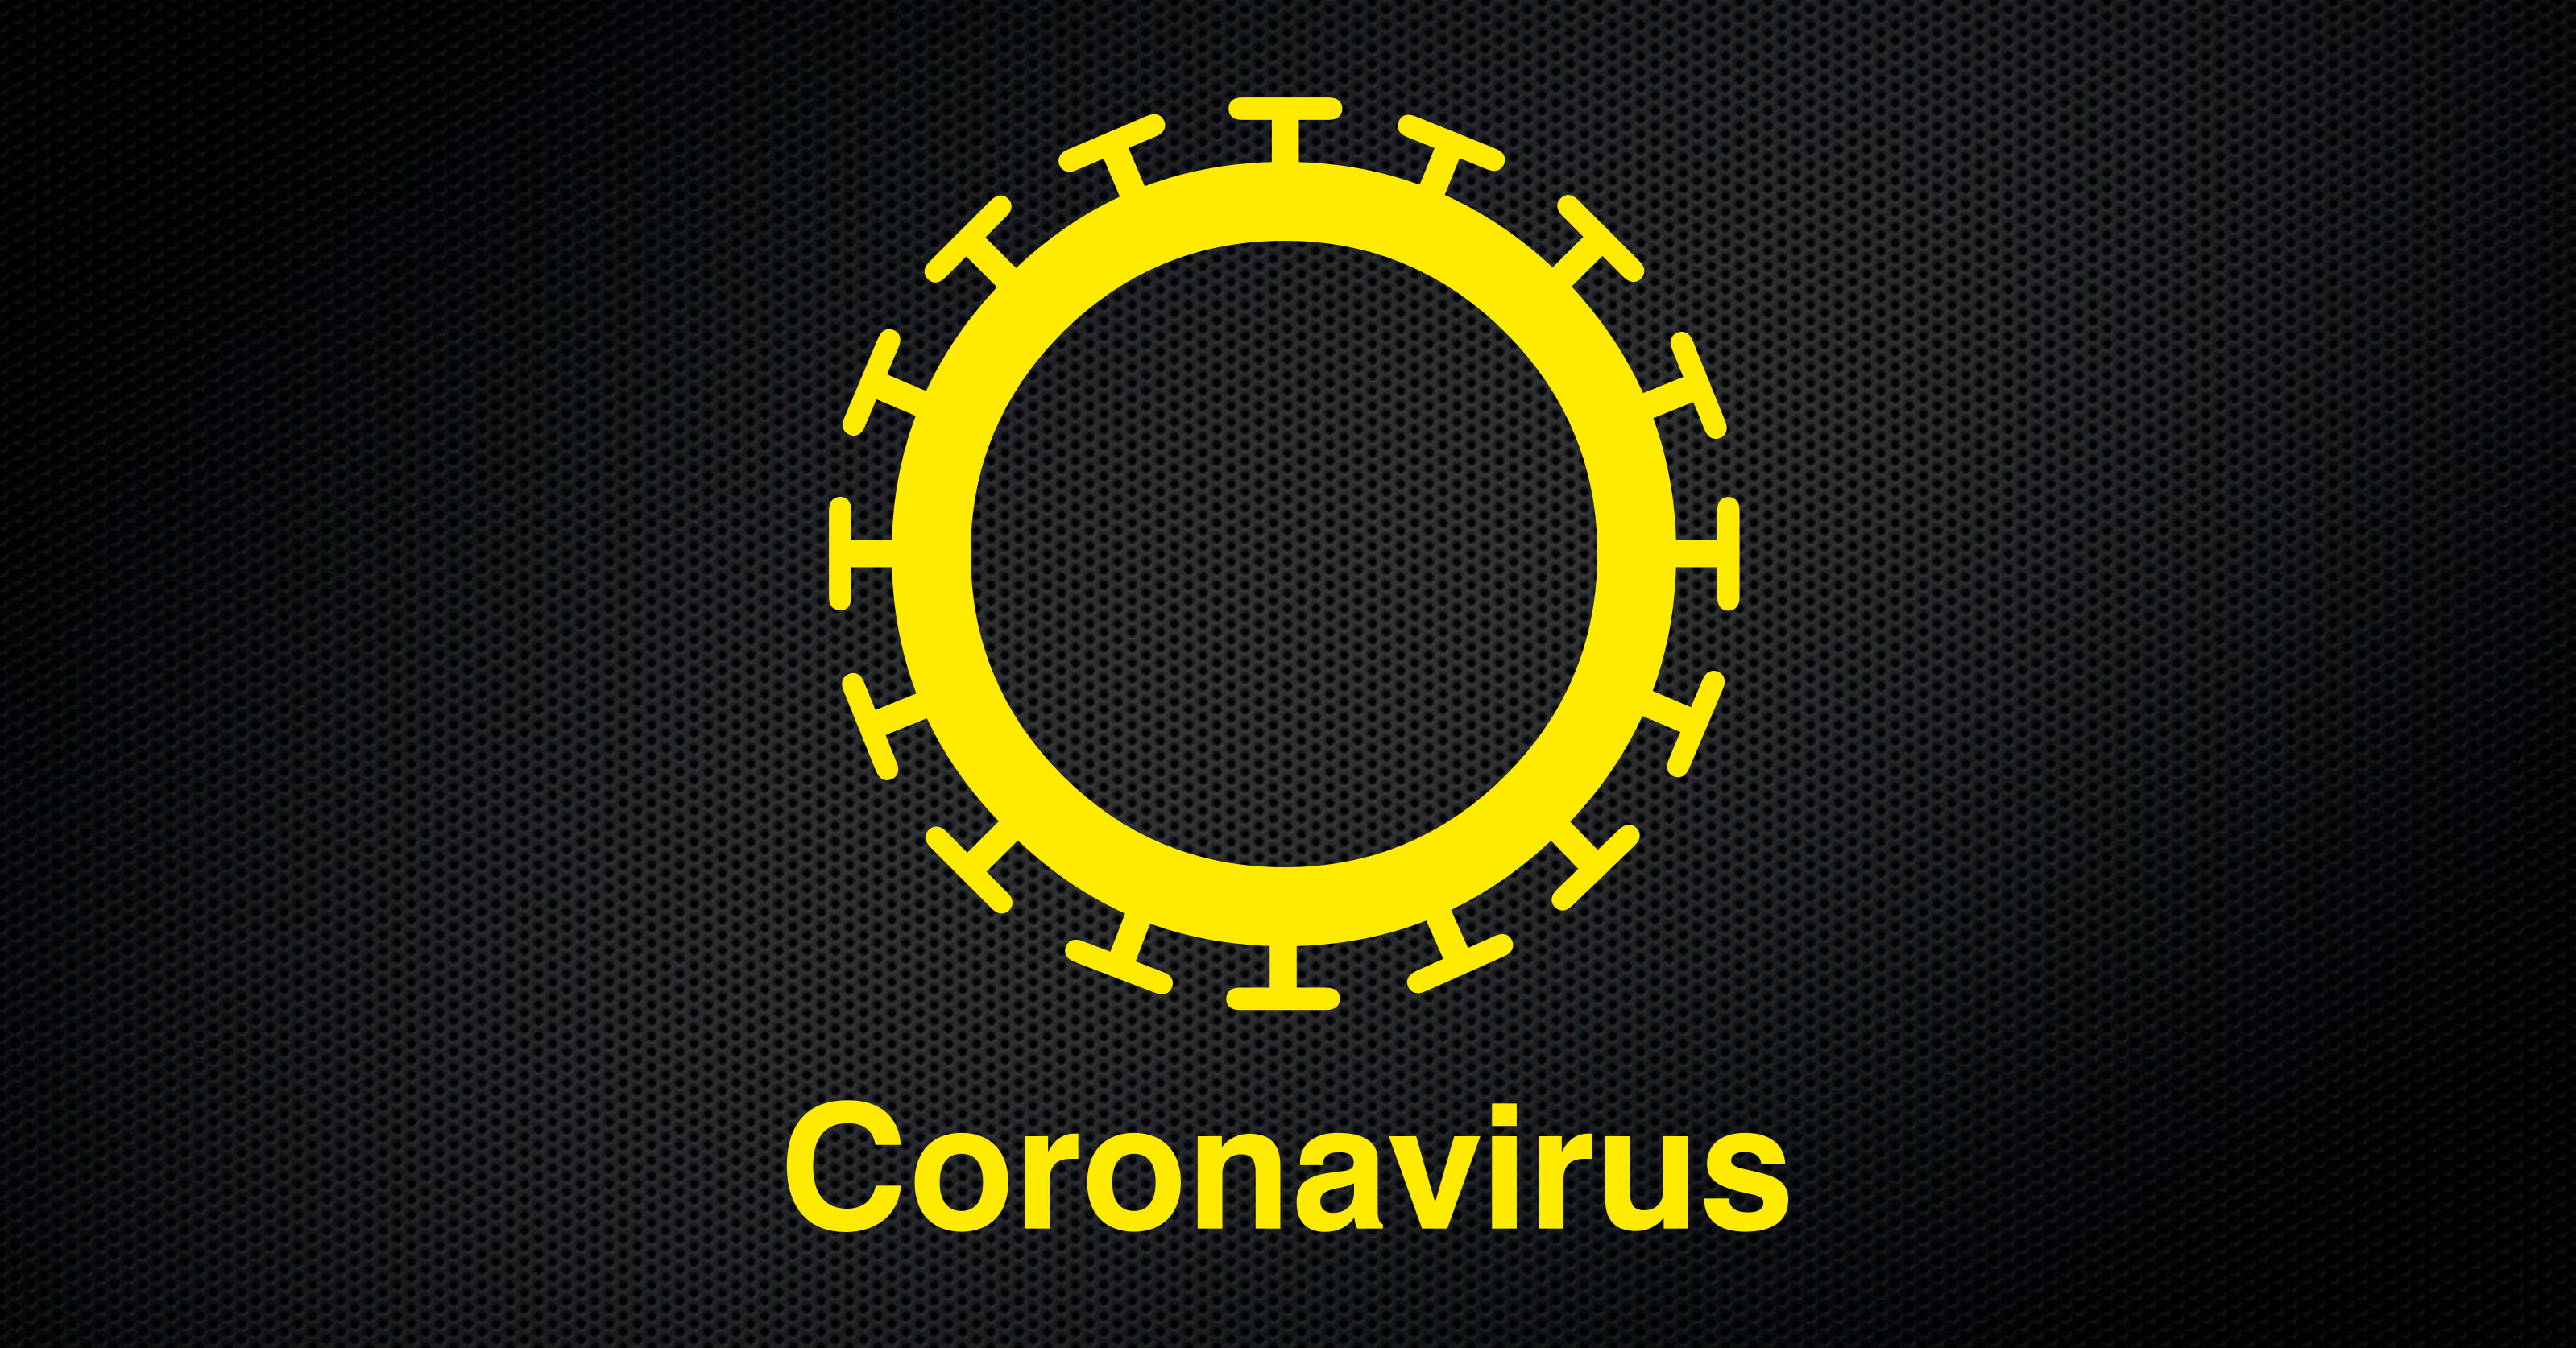 Coronavirus - what to expect when you visit.